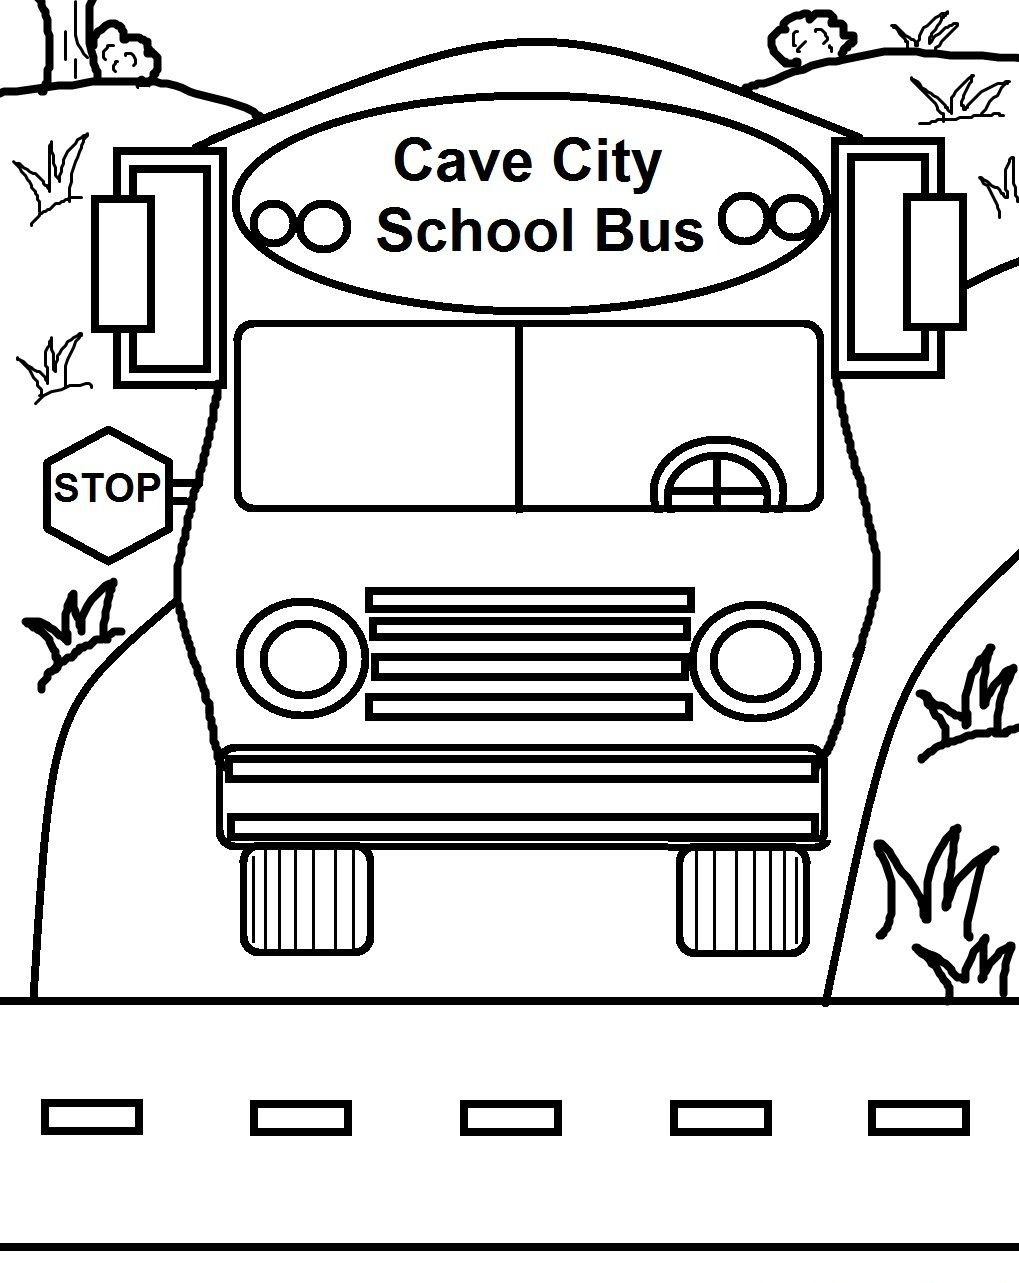 Free Printable School Bus Coloring Pages For Kids | Coloring_pages ...